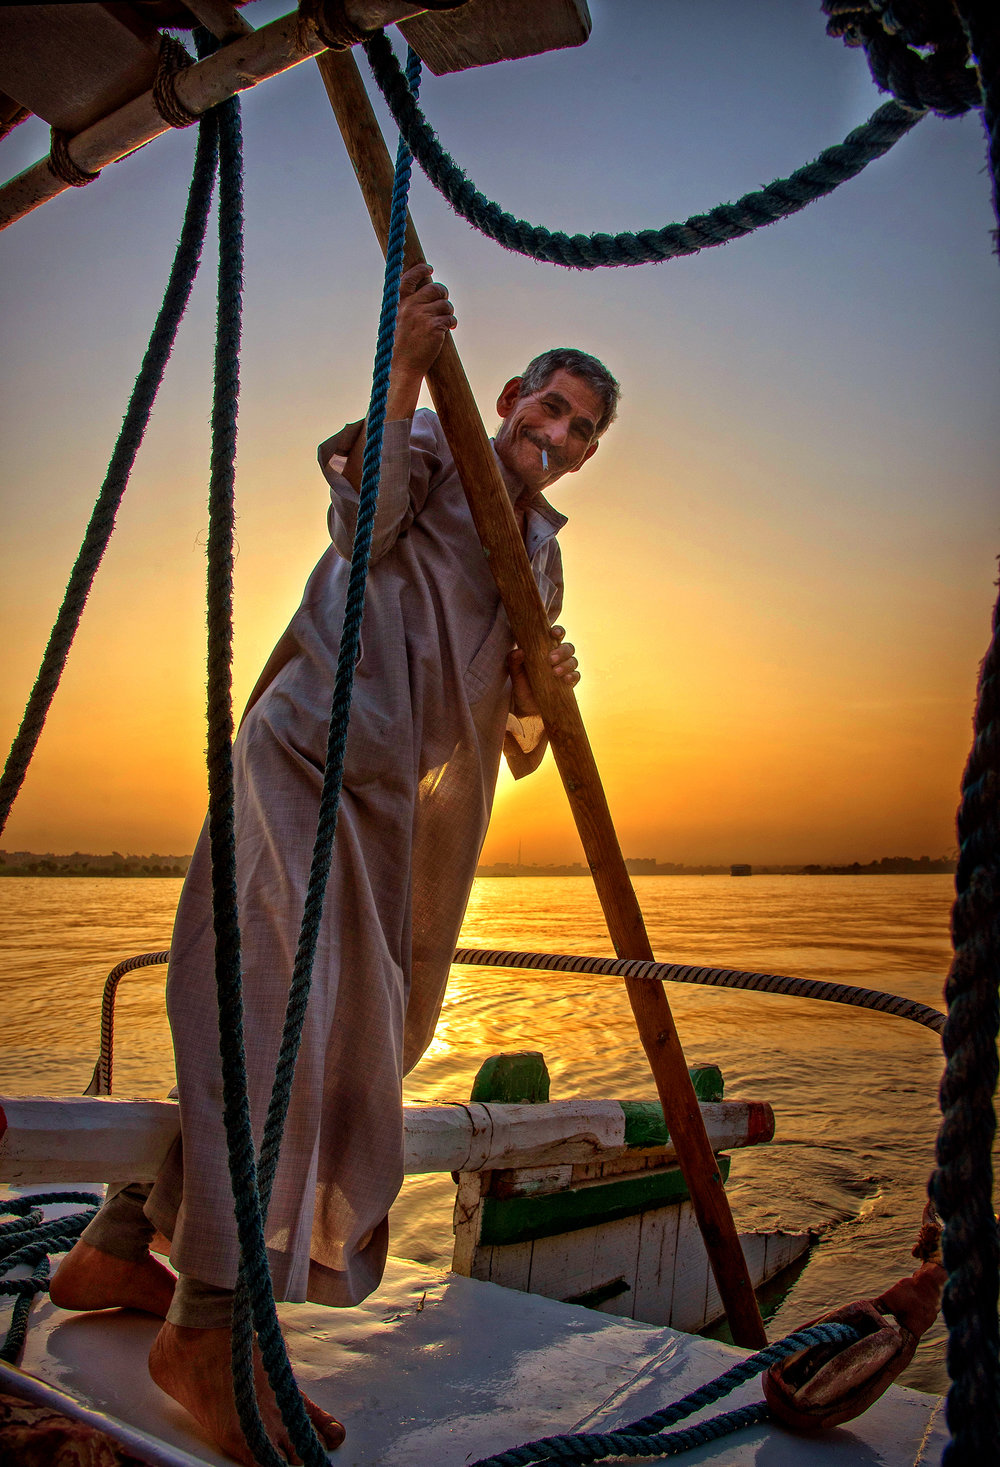 Ahoy! The captain of a felucca on the Nile River